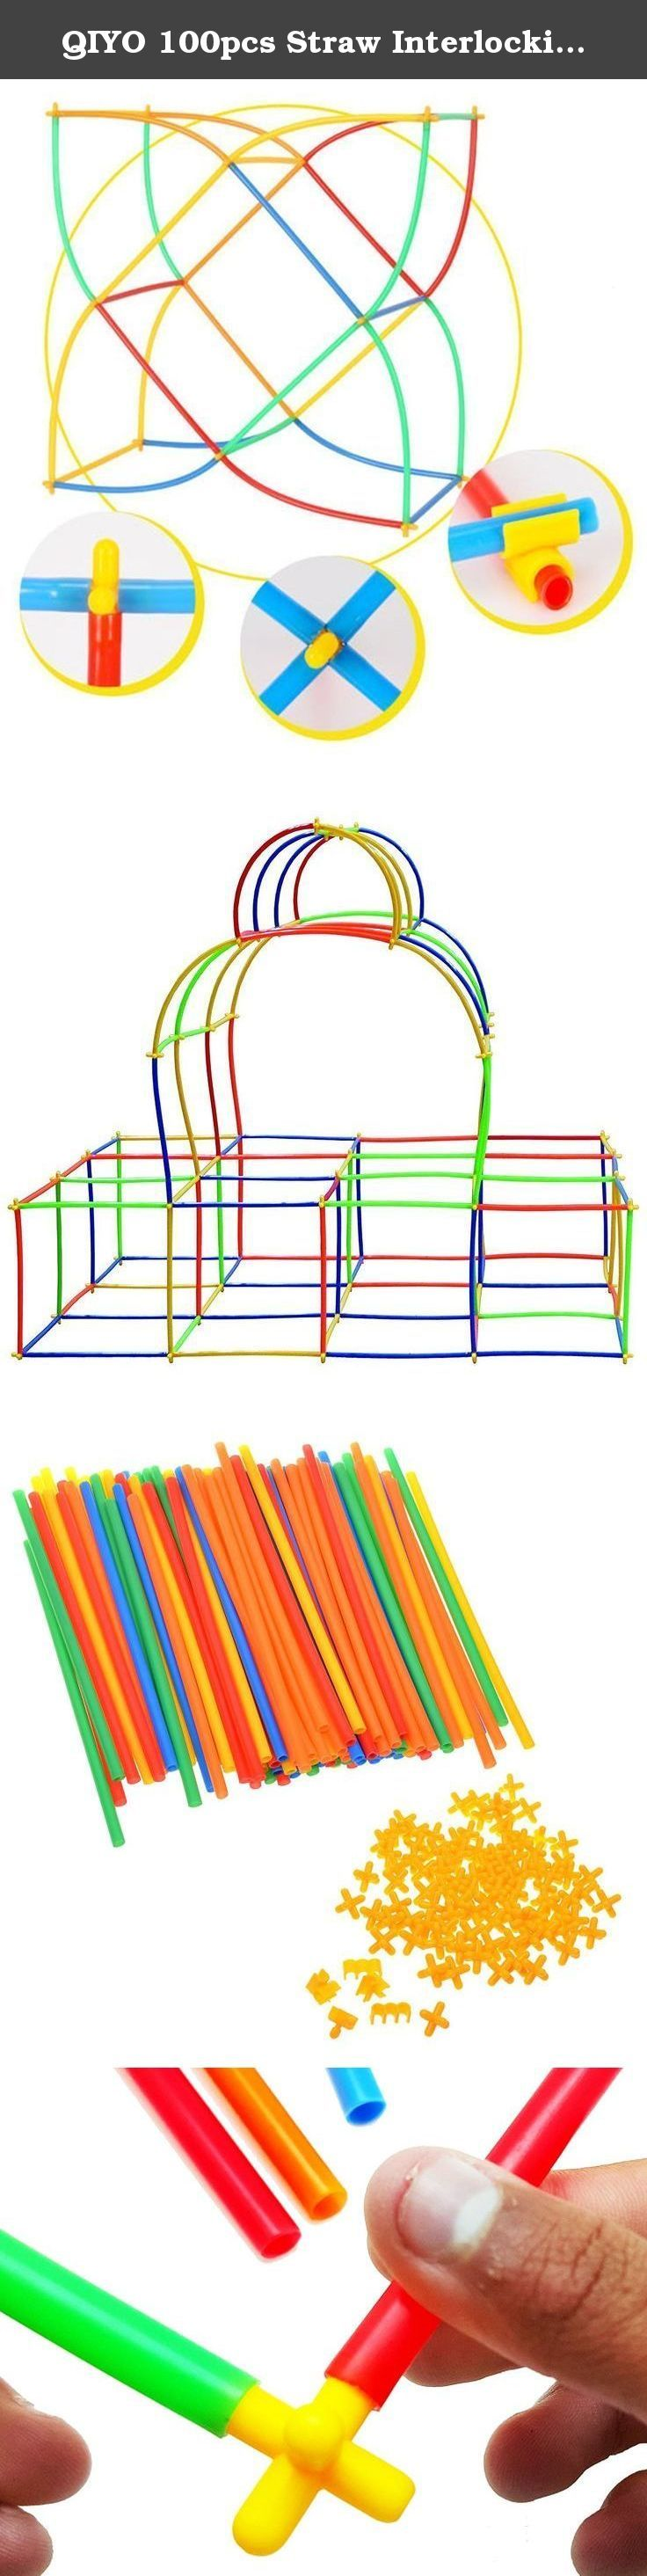 QIYO 100pcs Straw Interlocking Constructor Toys - Plastic Building Engineering Toys - Fine Motor Skill Development Educational Block Set - Best Safe Birthday Chirstmas Gift for Kids Boys Girls. Engineers Start Here! Give Your Child The Skills Today! Great for sensory development, occupational therapy and autistic individuals. Endless creative combinations teaches spatial thinking. WARNINGS 1. Adult supervision is required for children. 2. Please do not throw the toys to each other. 3…